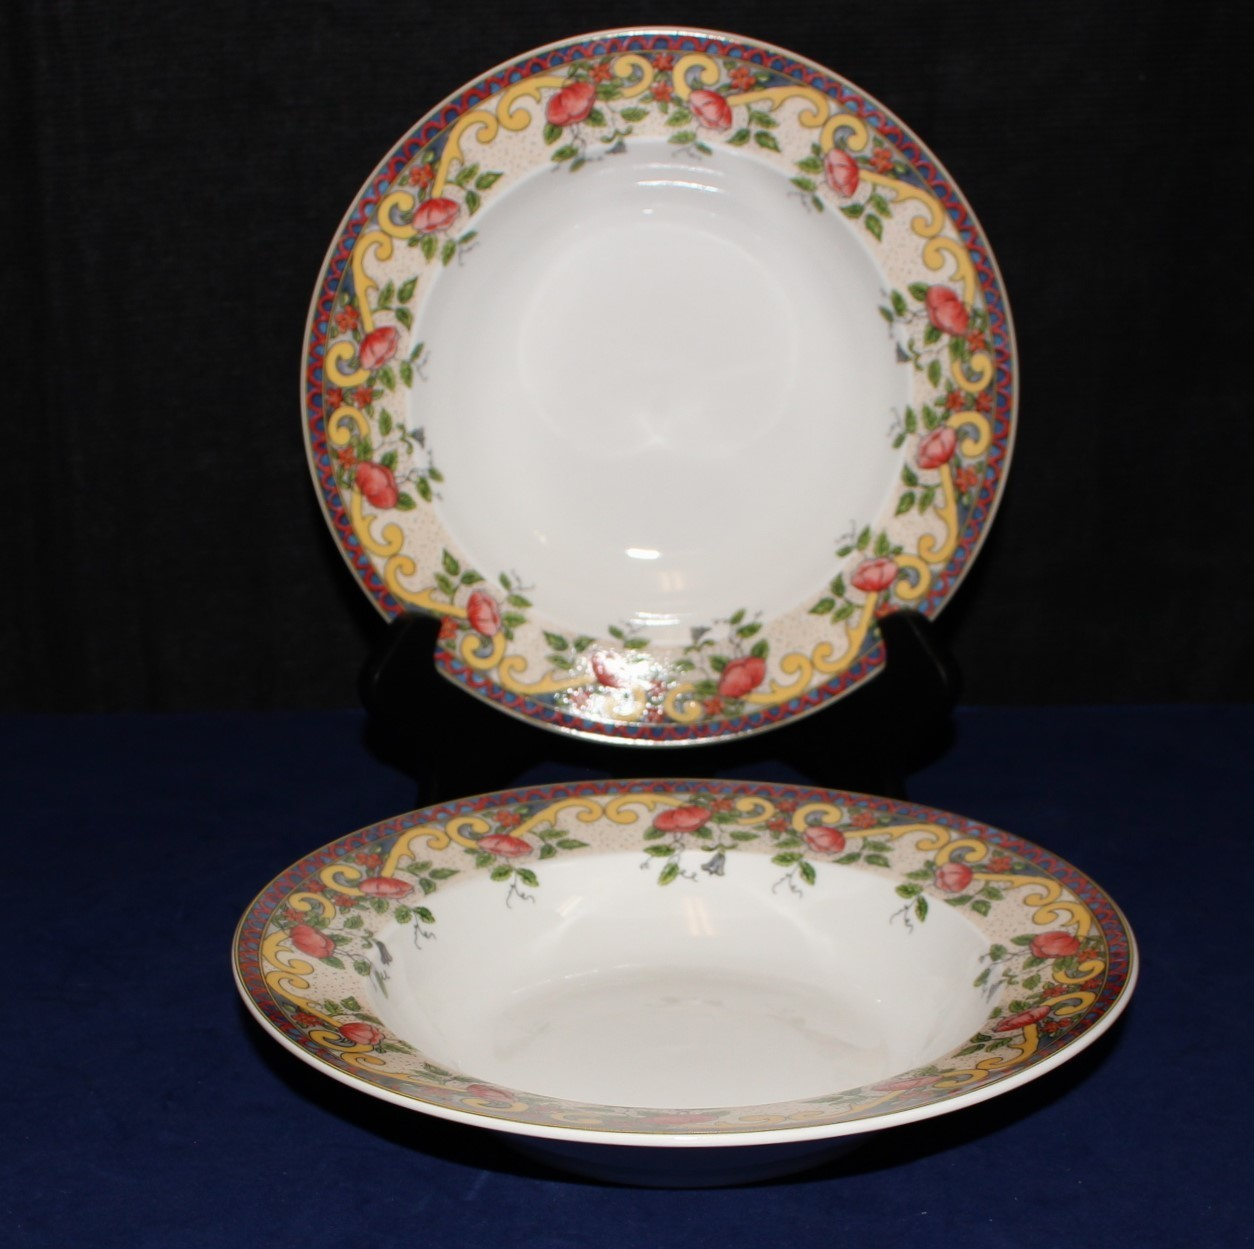 "Set of 2 American Atelier 8 5/8"" Soup Bowls Petite Provence 5074 Pattern"